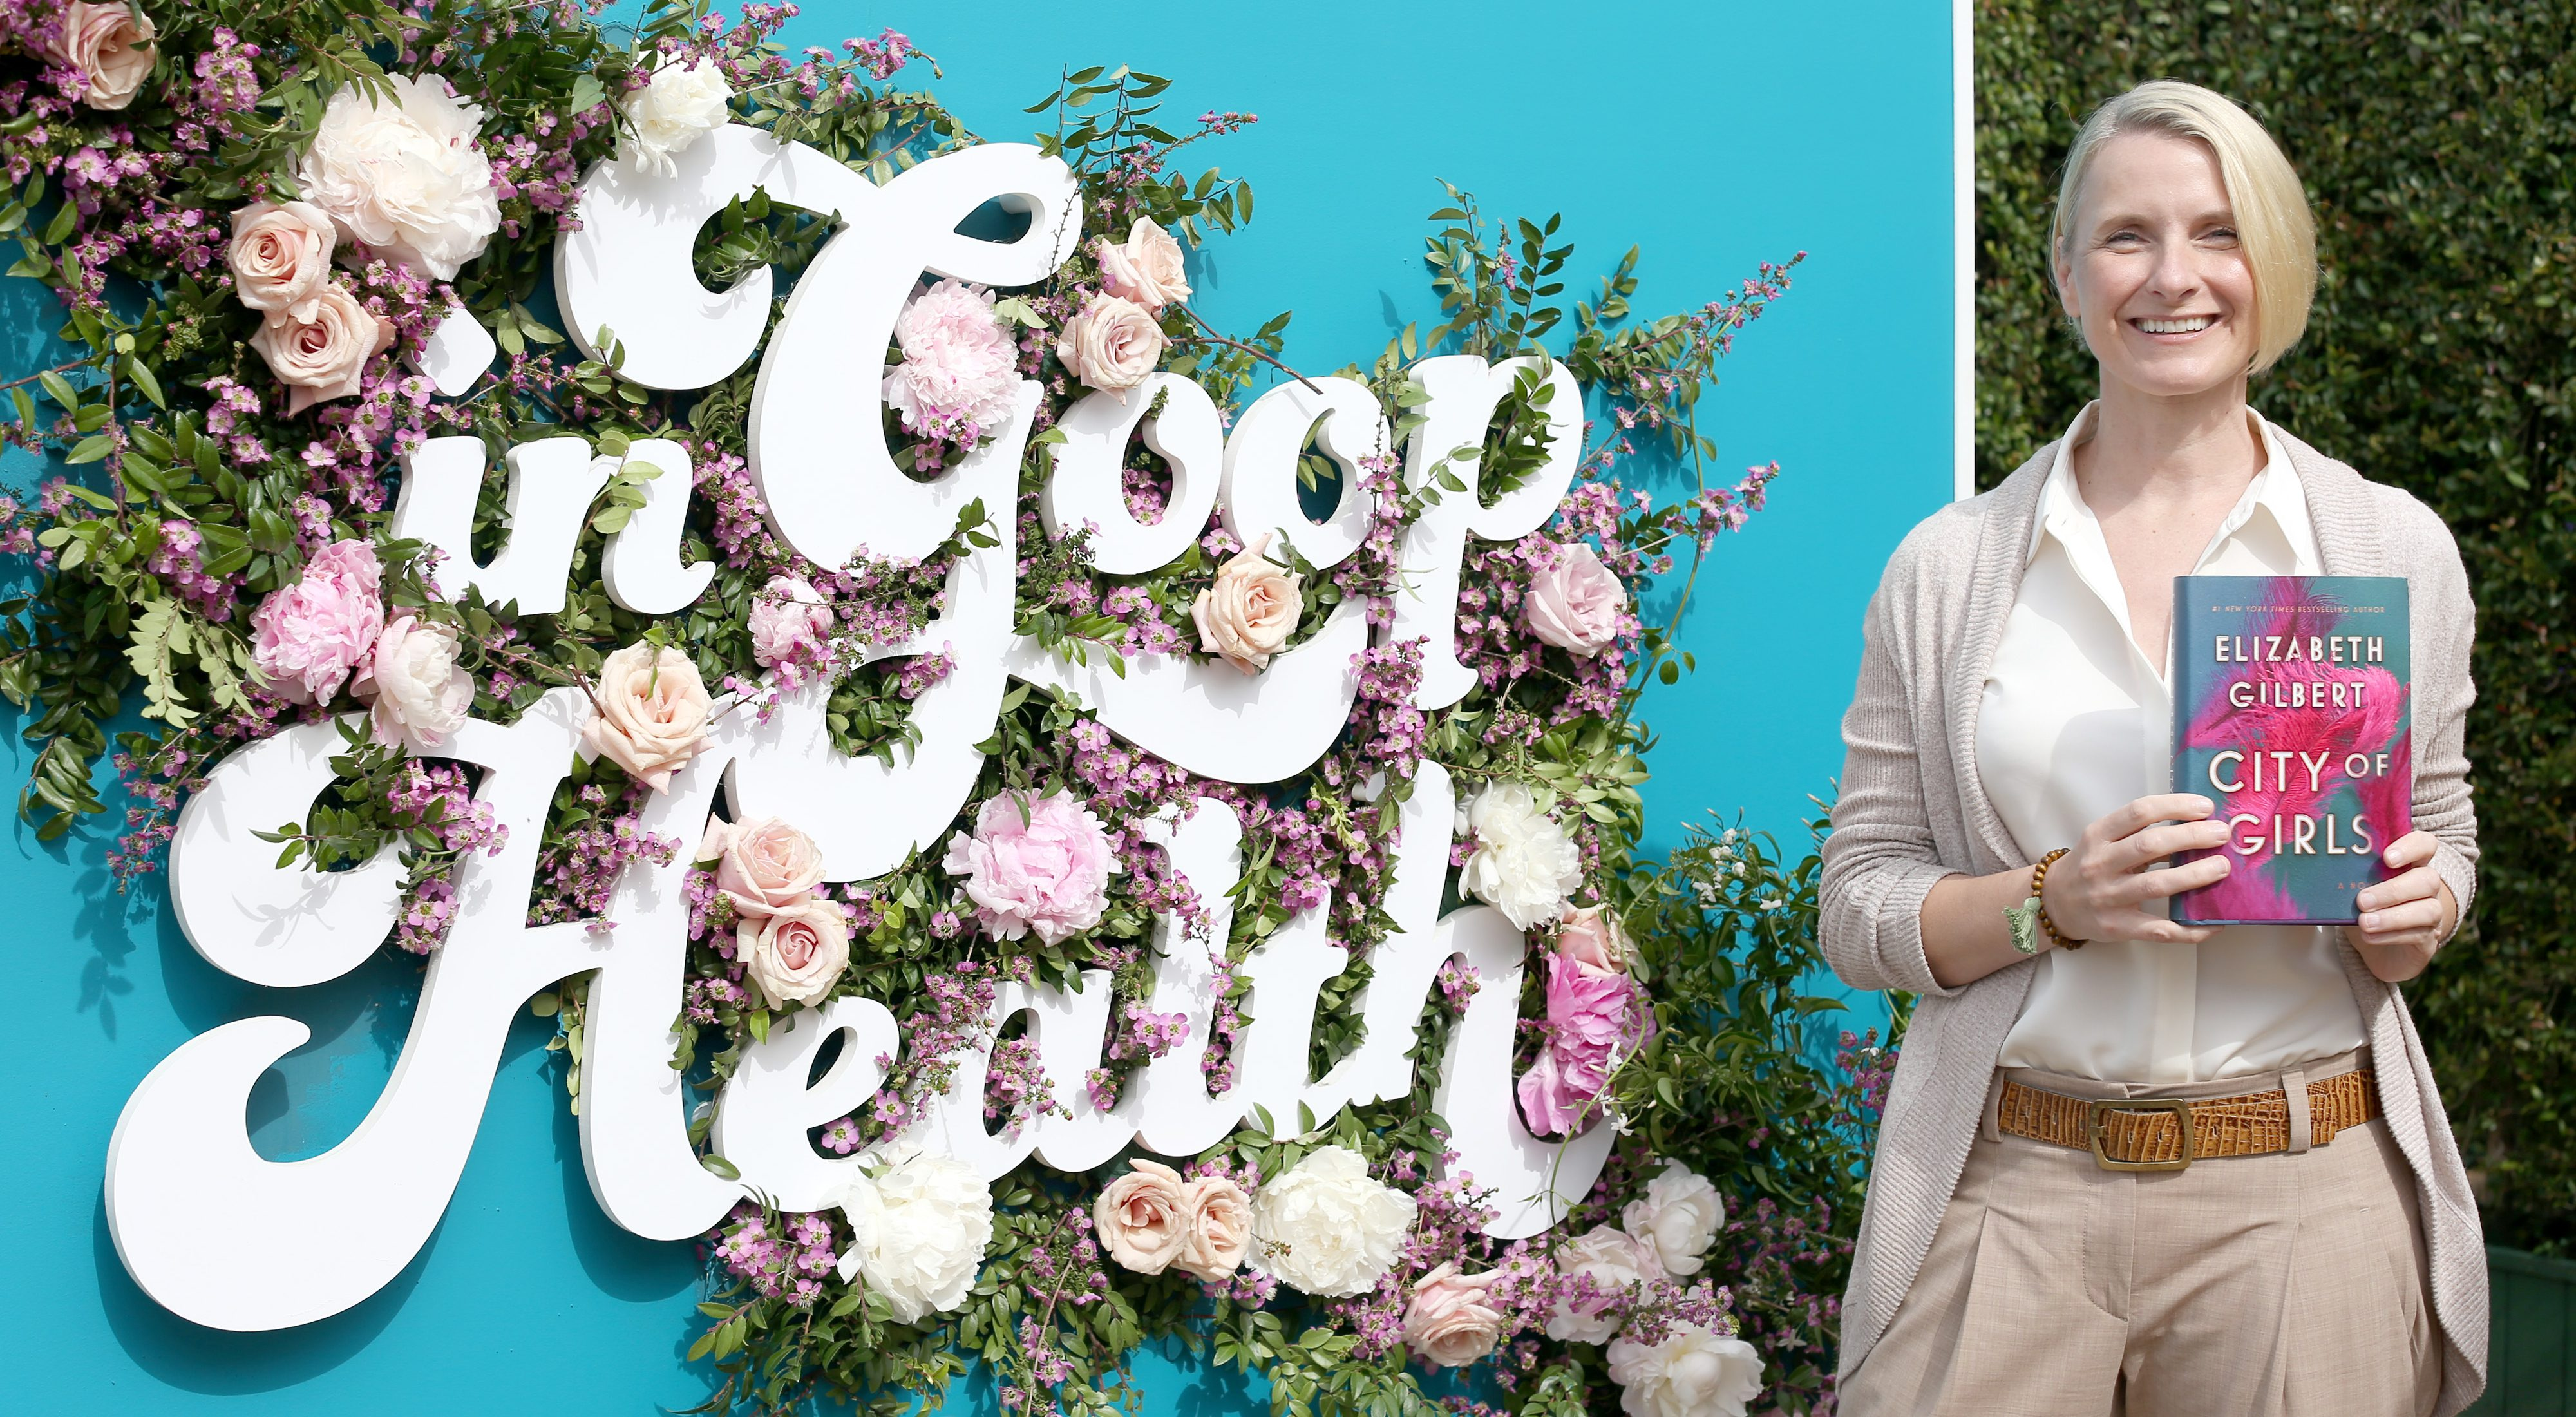 LOS ANGELES, CALIFORNIA - MAY 18: Elizabeth Gilbert attends In goop Health Summit Los Angeles 2019 at Rolling Greens Nursery on May 18, 2019 in Los Angeles, California. (Photo by Phillip Faraone/Getty Images for goop)